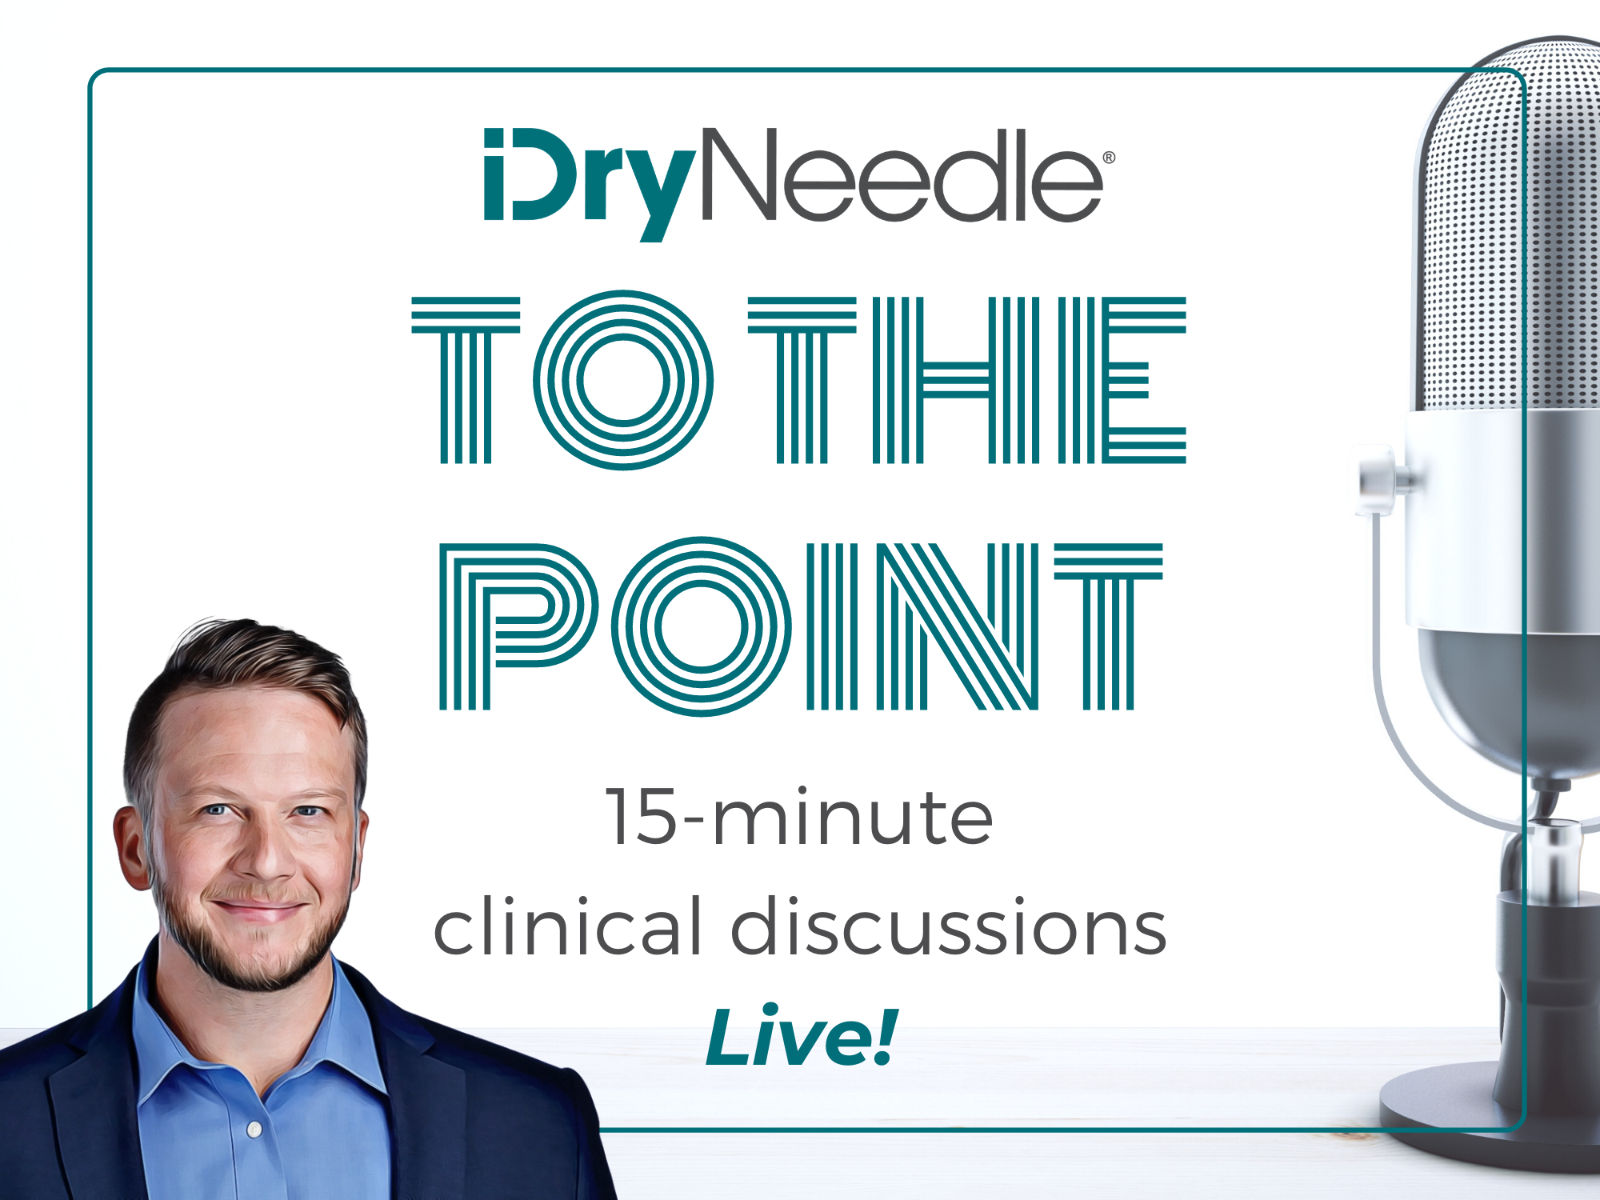 IDRY NEEDLE TO THE POINT PODCAST